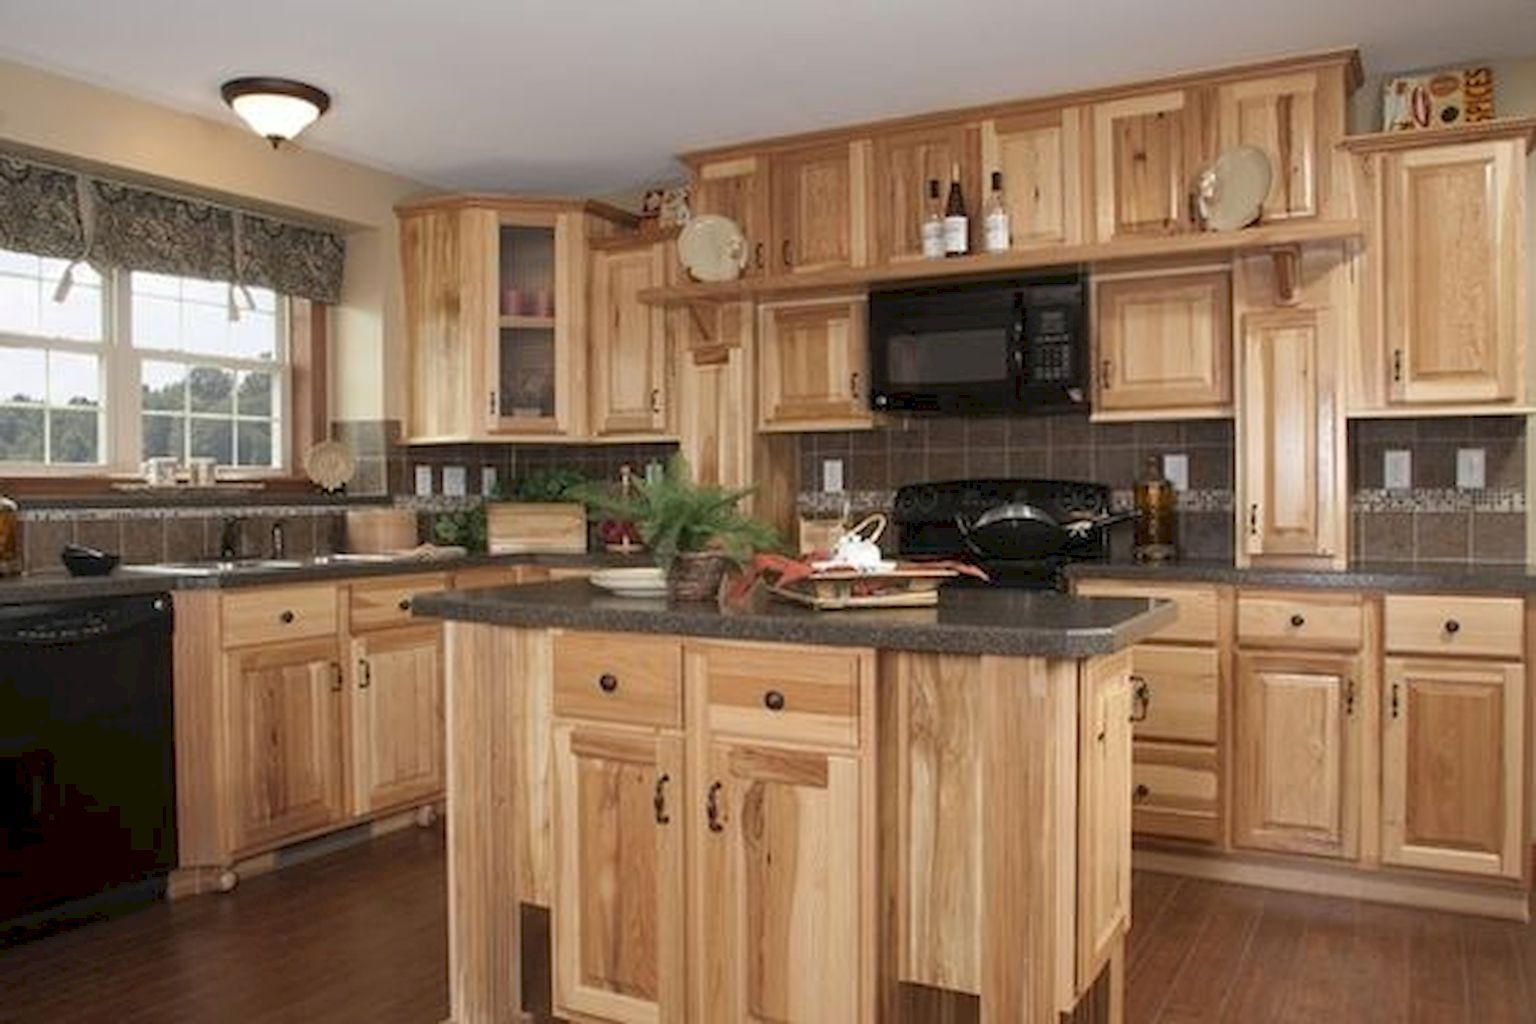 80 Rustic Kitchen Cabinet Makeover Ideas | Rustic kitchen cabinets on ideas for fireplace makeovers, small galley kitchen makeovers, ideas small kitchen makeovers before and after, ideas for lamp makeovers, ideas for mirror makeovers, kitchen counter makeovers, ideas for kitchen countertops, ideas for living room makeovers, ideas for bedroom makeovers,